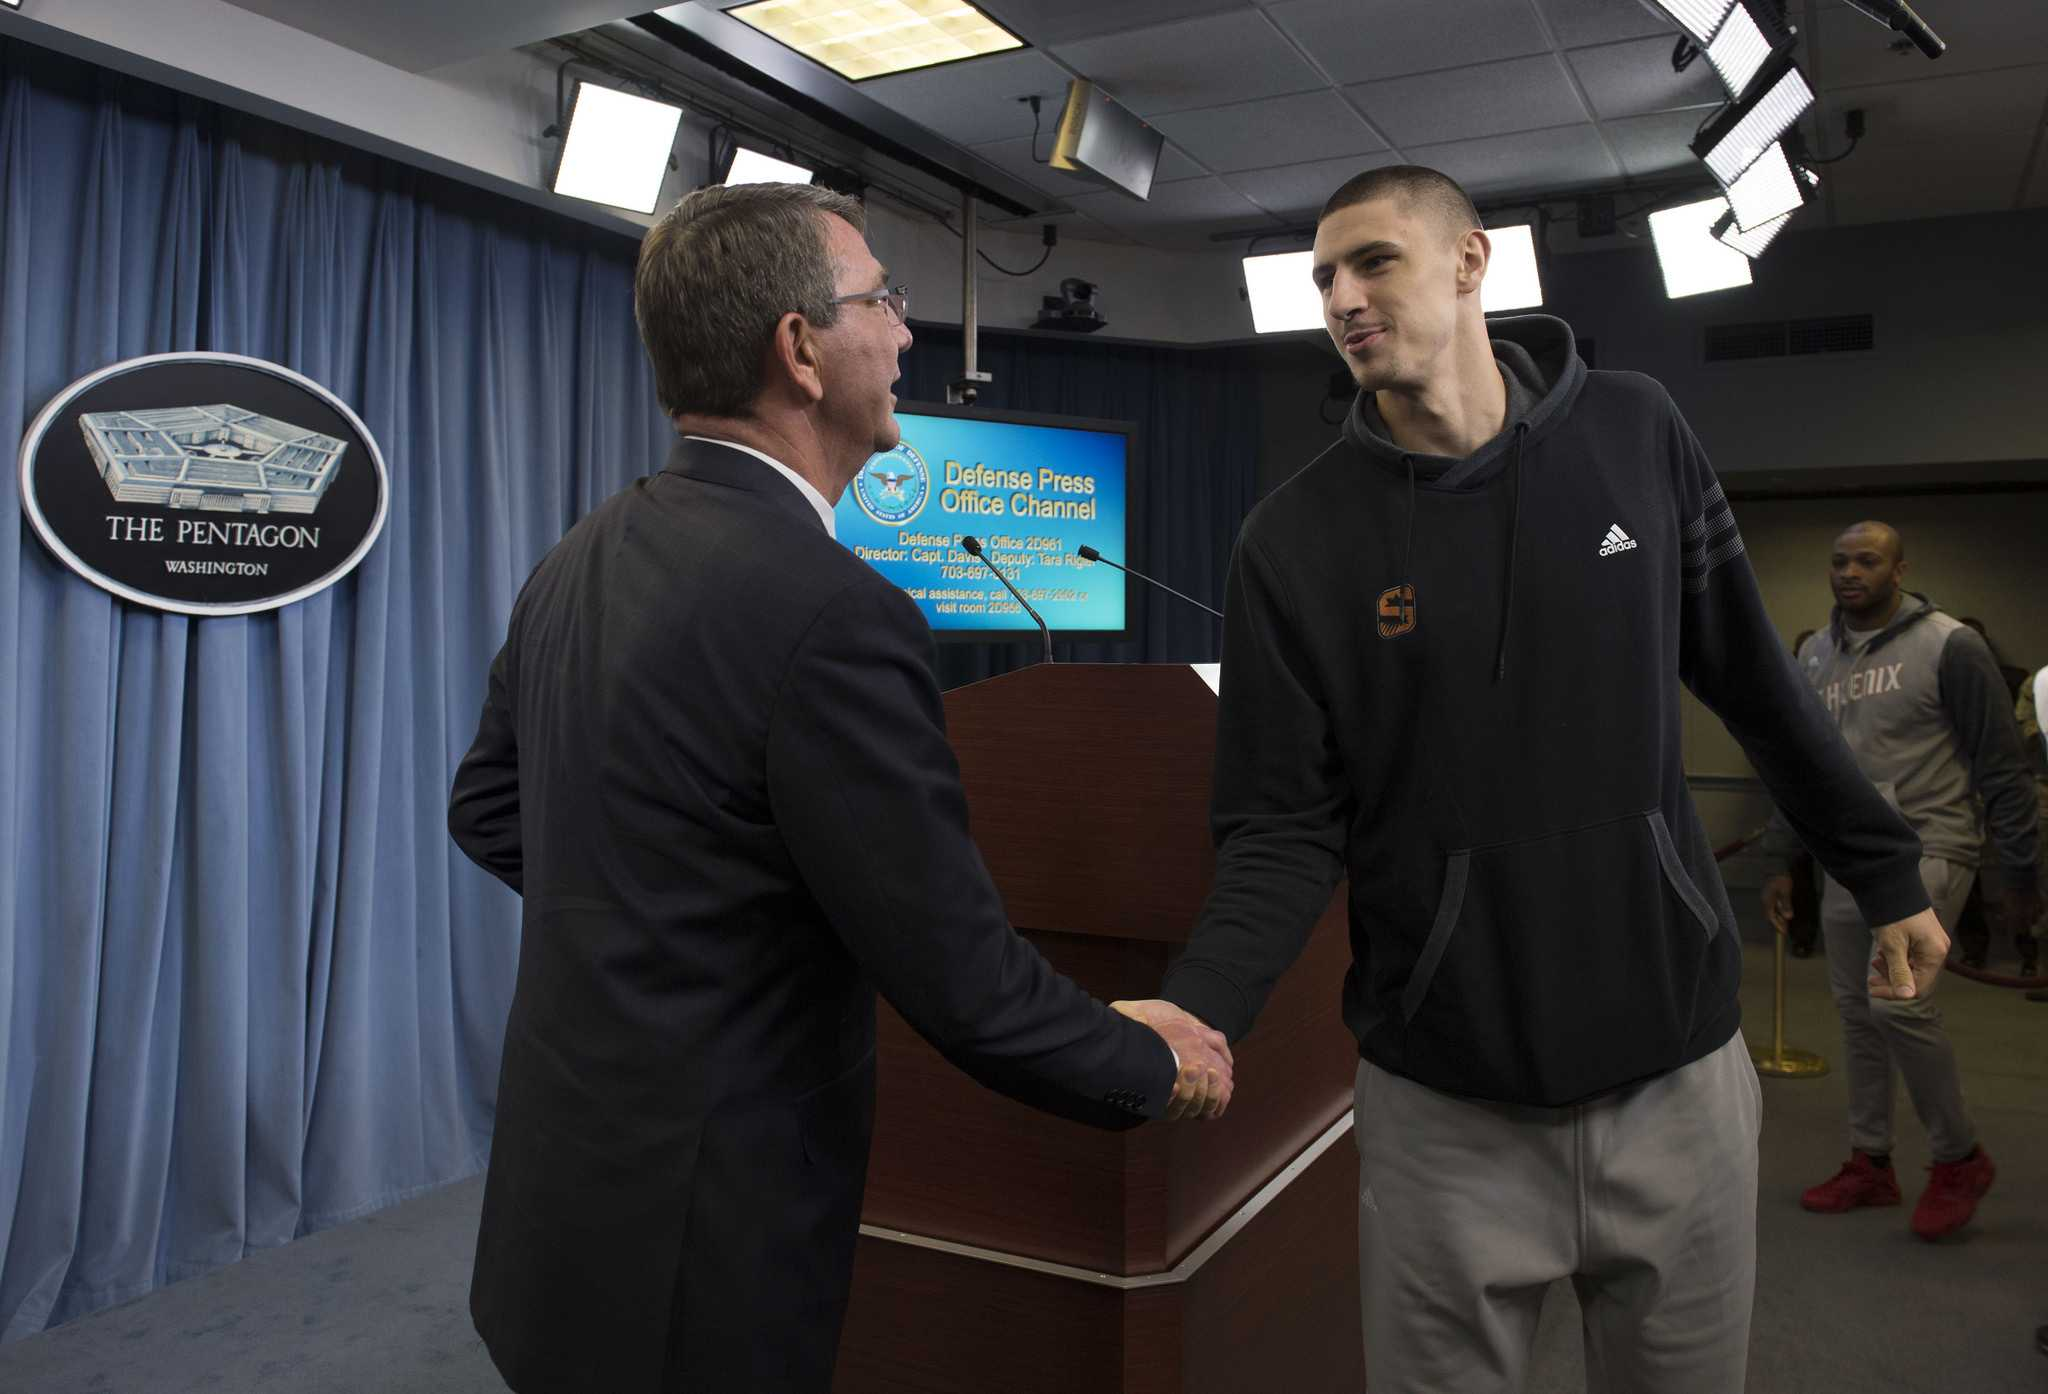 Secretary of Defense Ash Carter meets with Alex Len of the Phoenix Suns at the Pentagon, Dec 3, 2015.